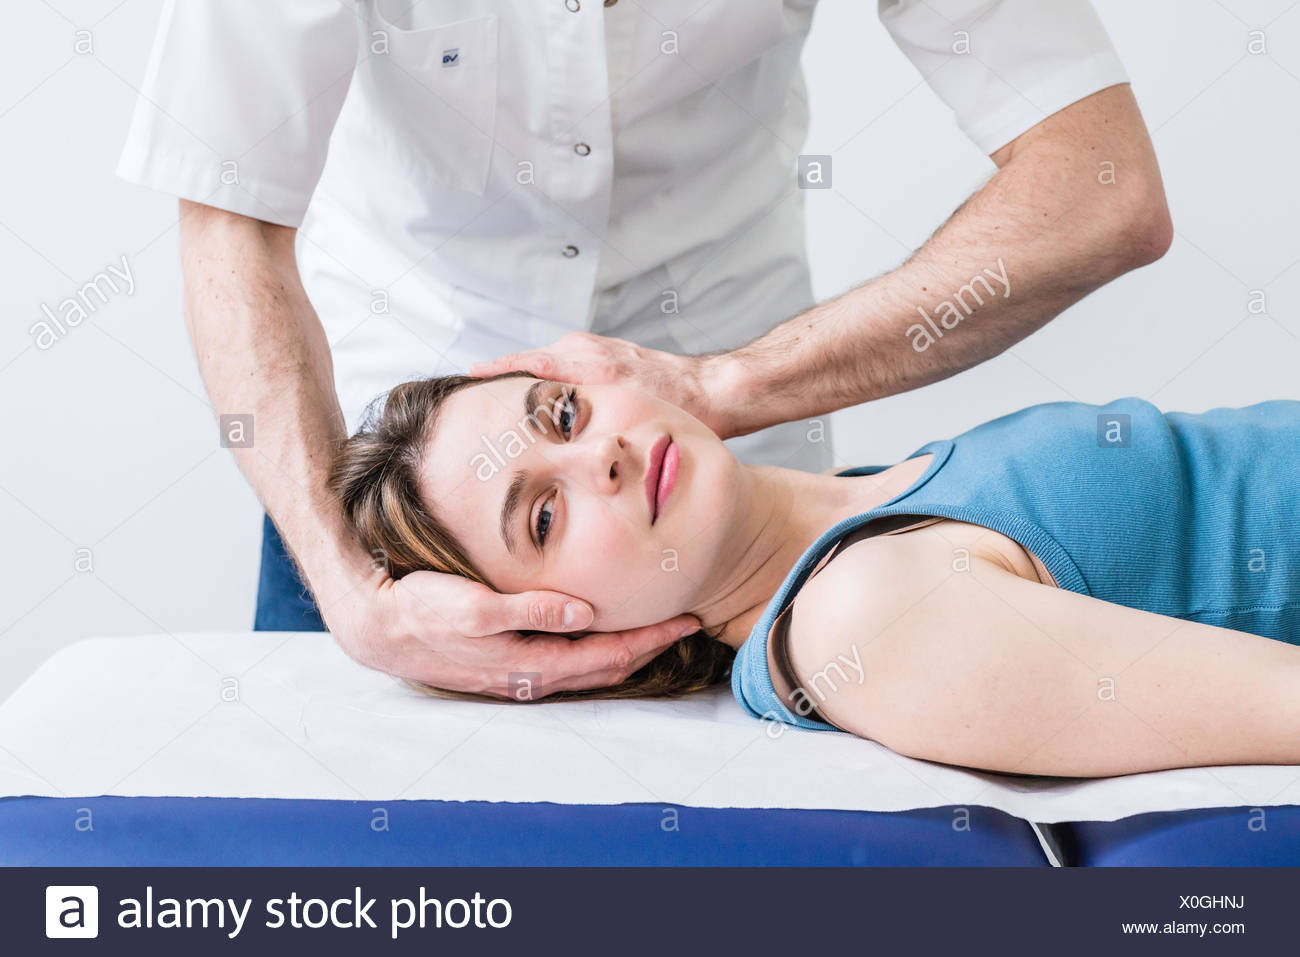 Structural osteopathy session in a woman suffering from neck pain. - Stock Image